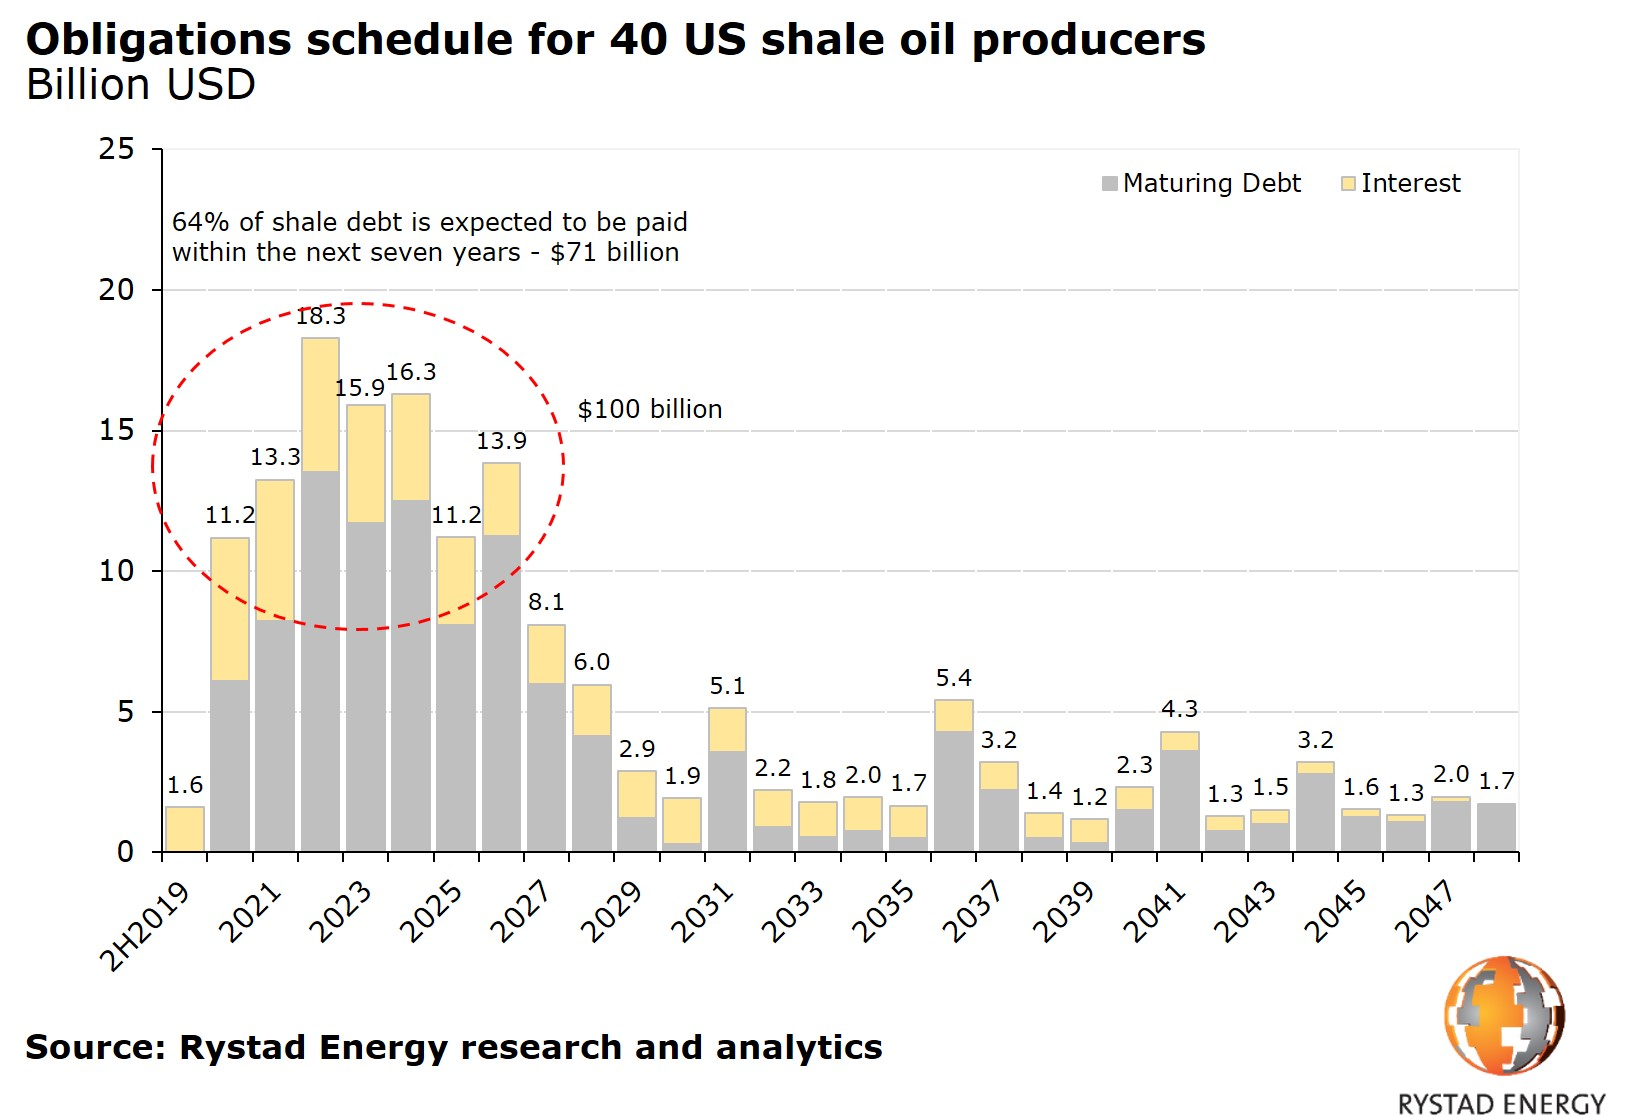 Obligations schedule for 40 US shale oil producers billion USD Rystad Energy research